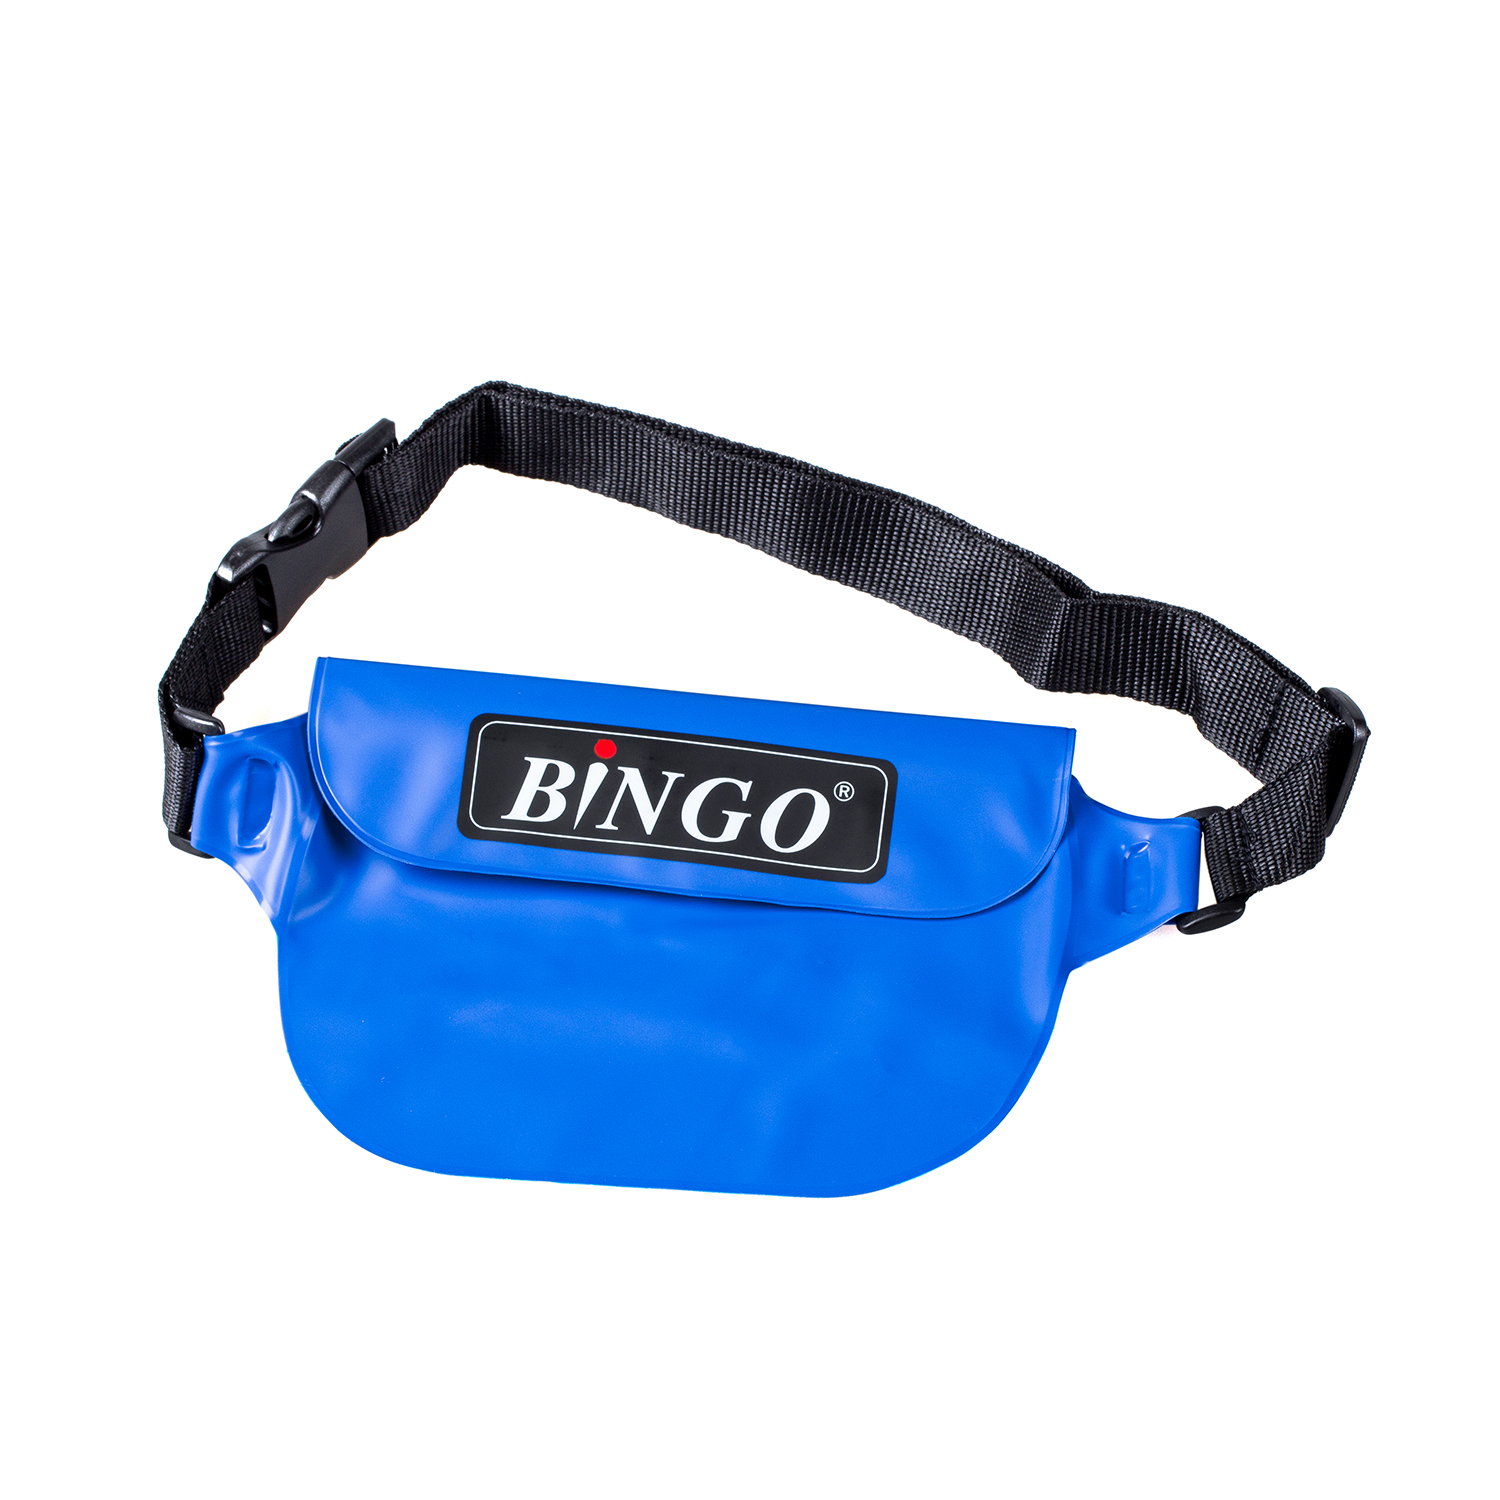 Bingo Waterproof Bag Rafting Waist Packs for Phone Wallet Purse Compact Camera(blue)